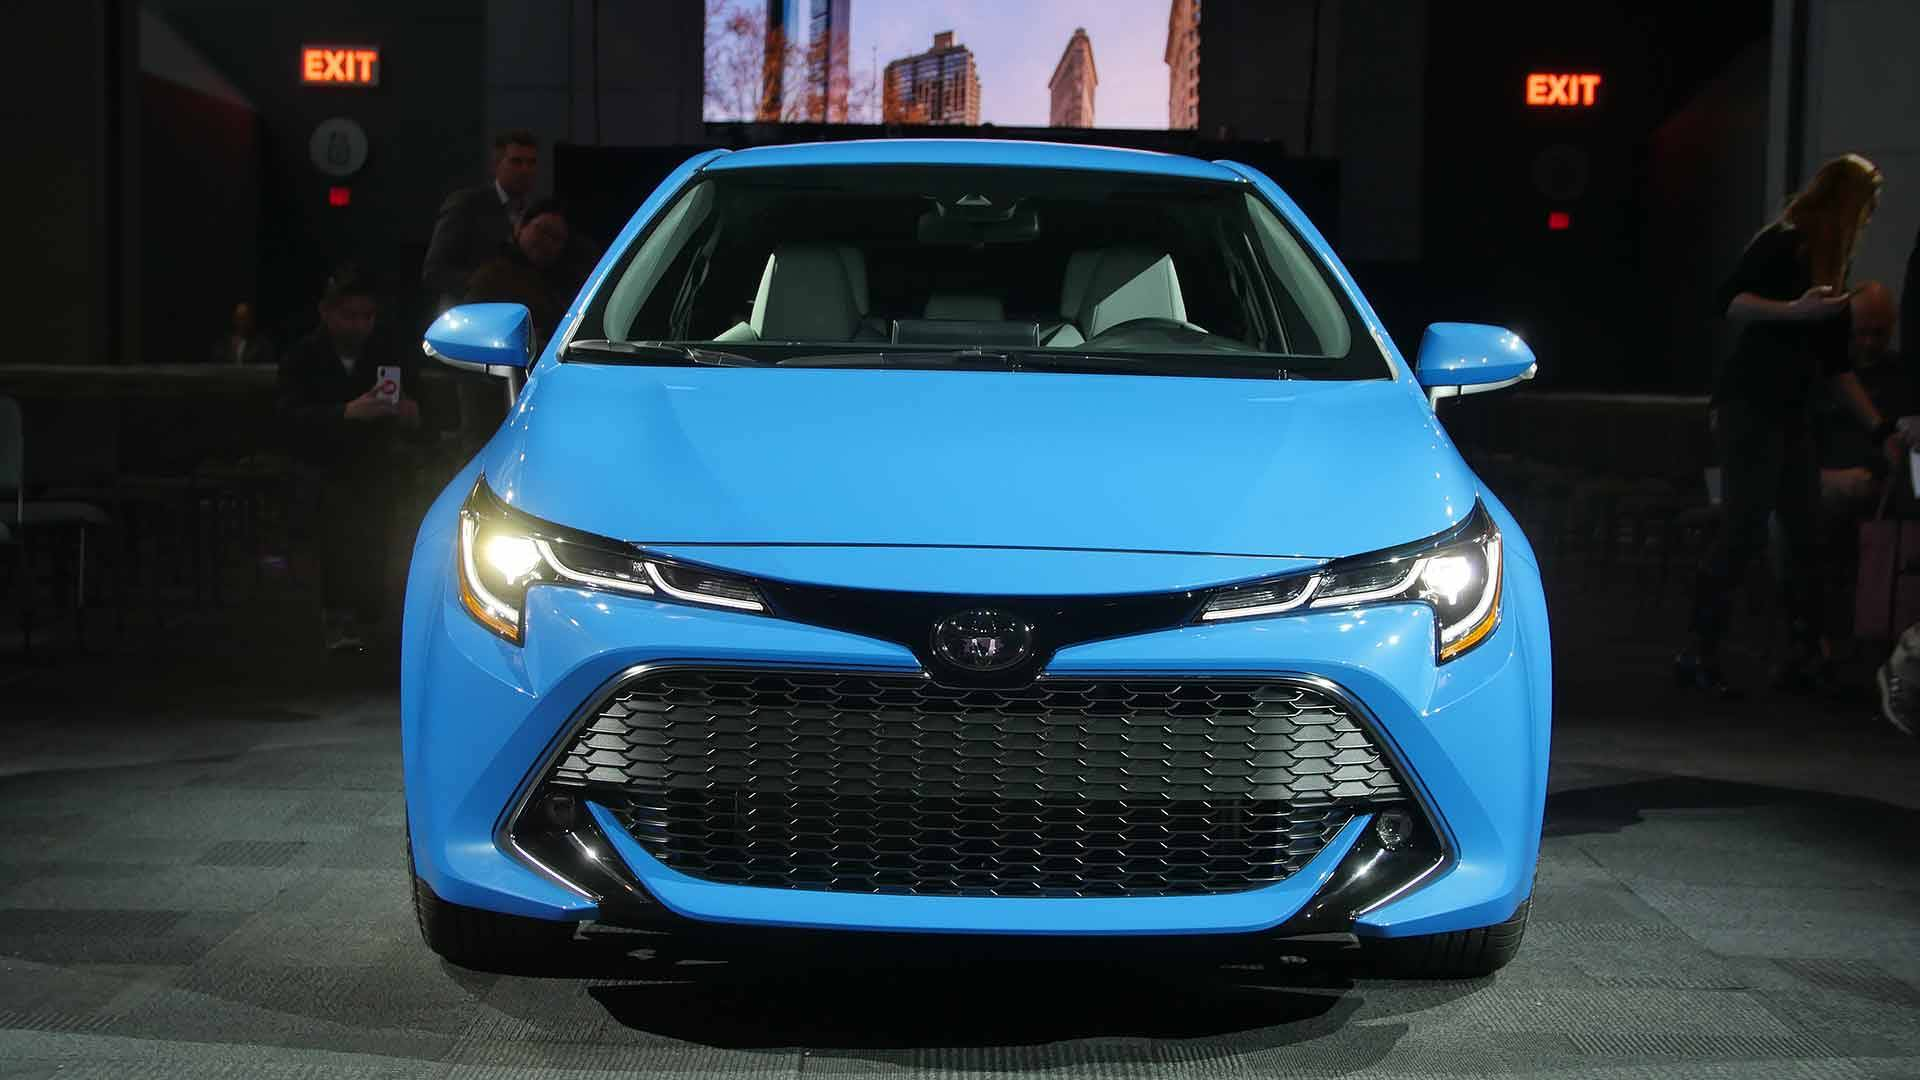 2020 Toyota Corolla Spied With Less Camo Hints Of New Design